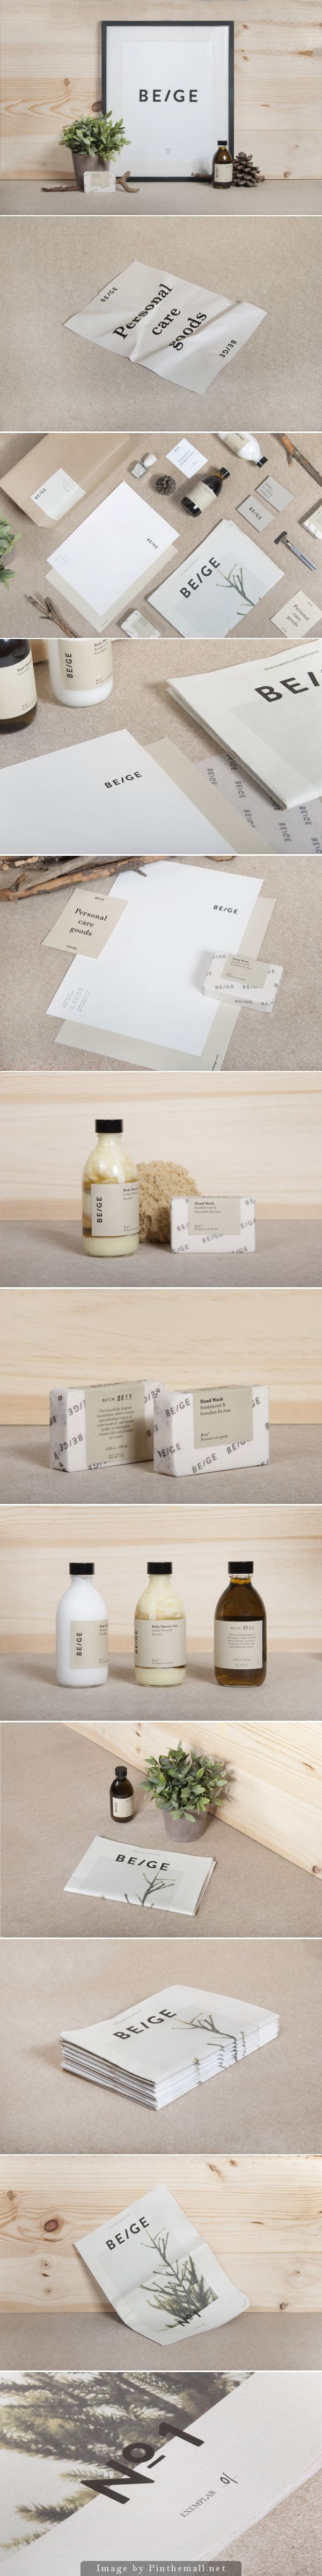 BE/GE identity by Josep Puy - created via http://pinthemall.net